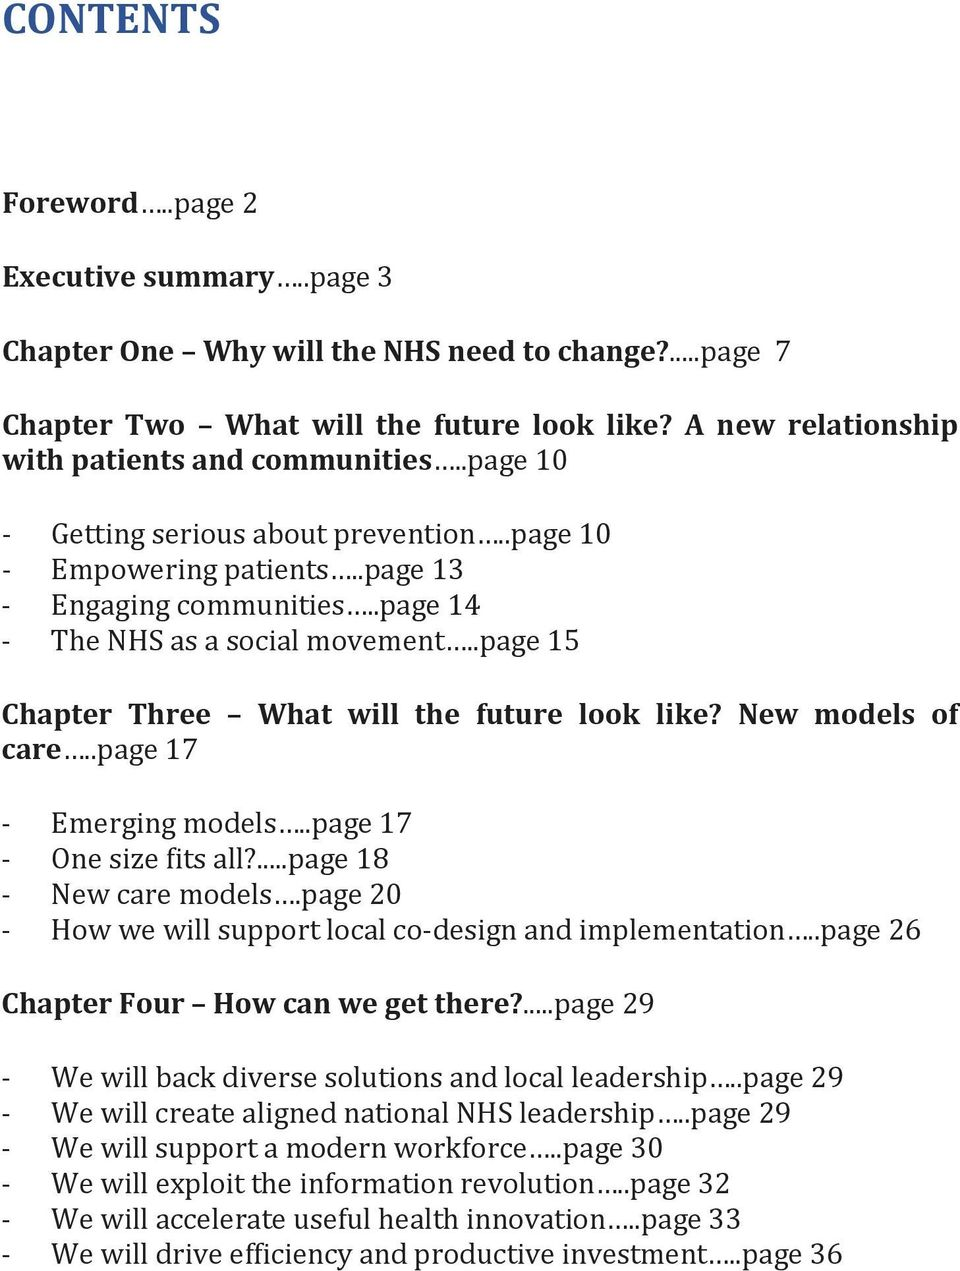 New models of care..page 17 - Emerging models..page 17 - One size fits all?...page 18 - New care models.page 20 - How we will support local co-design and implementation.